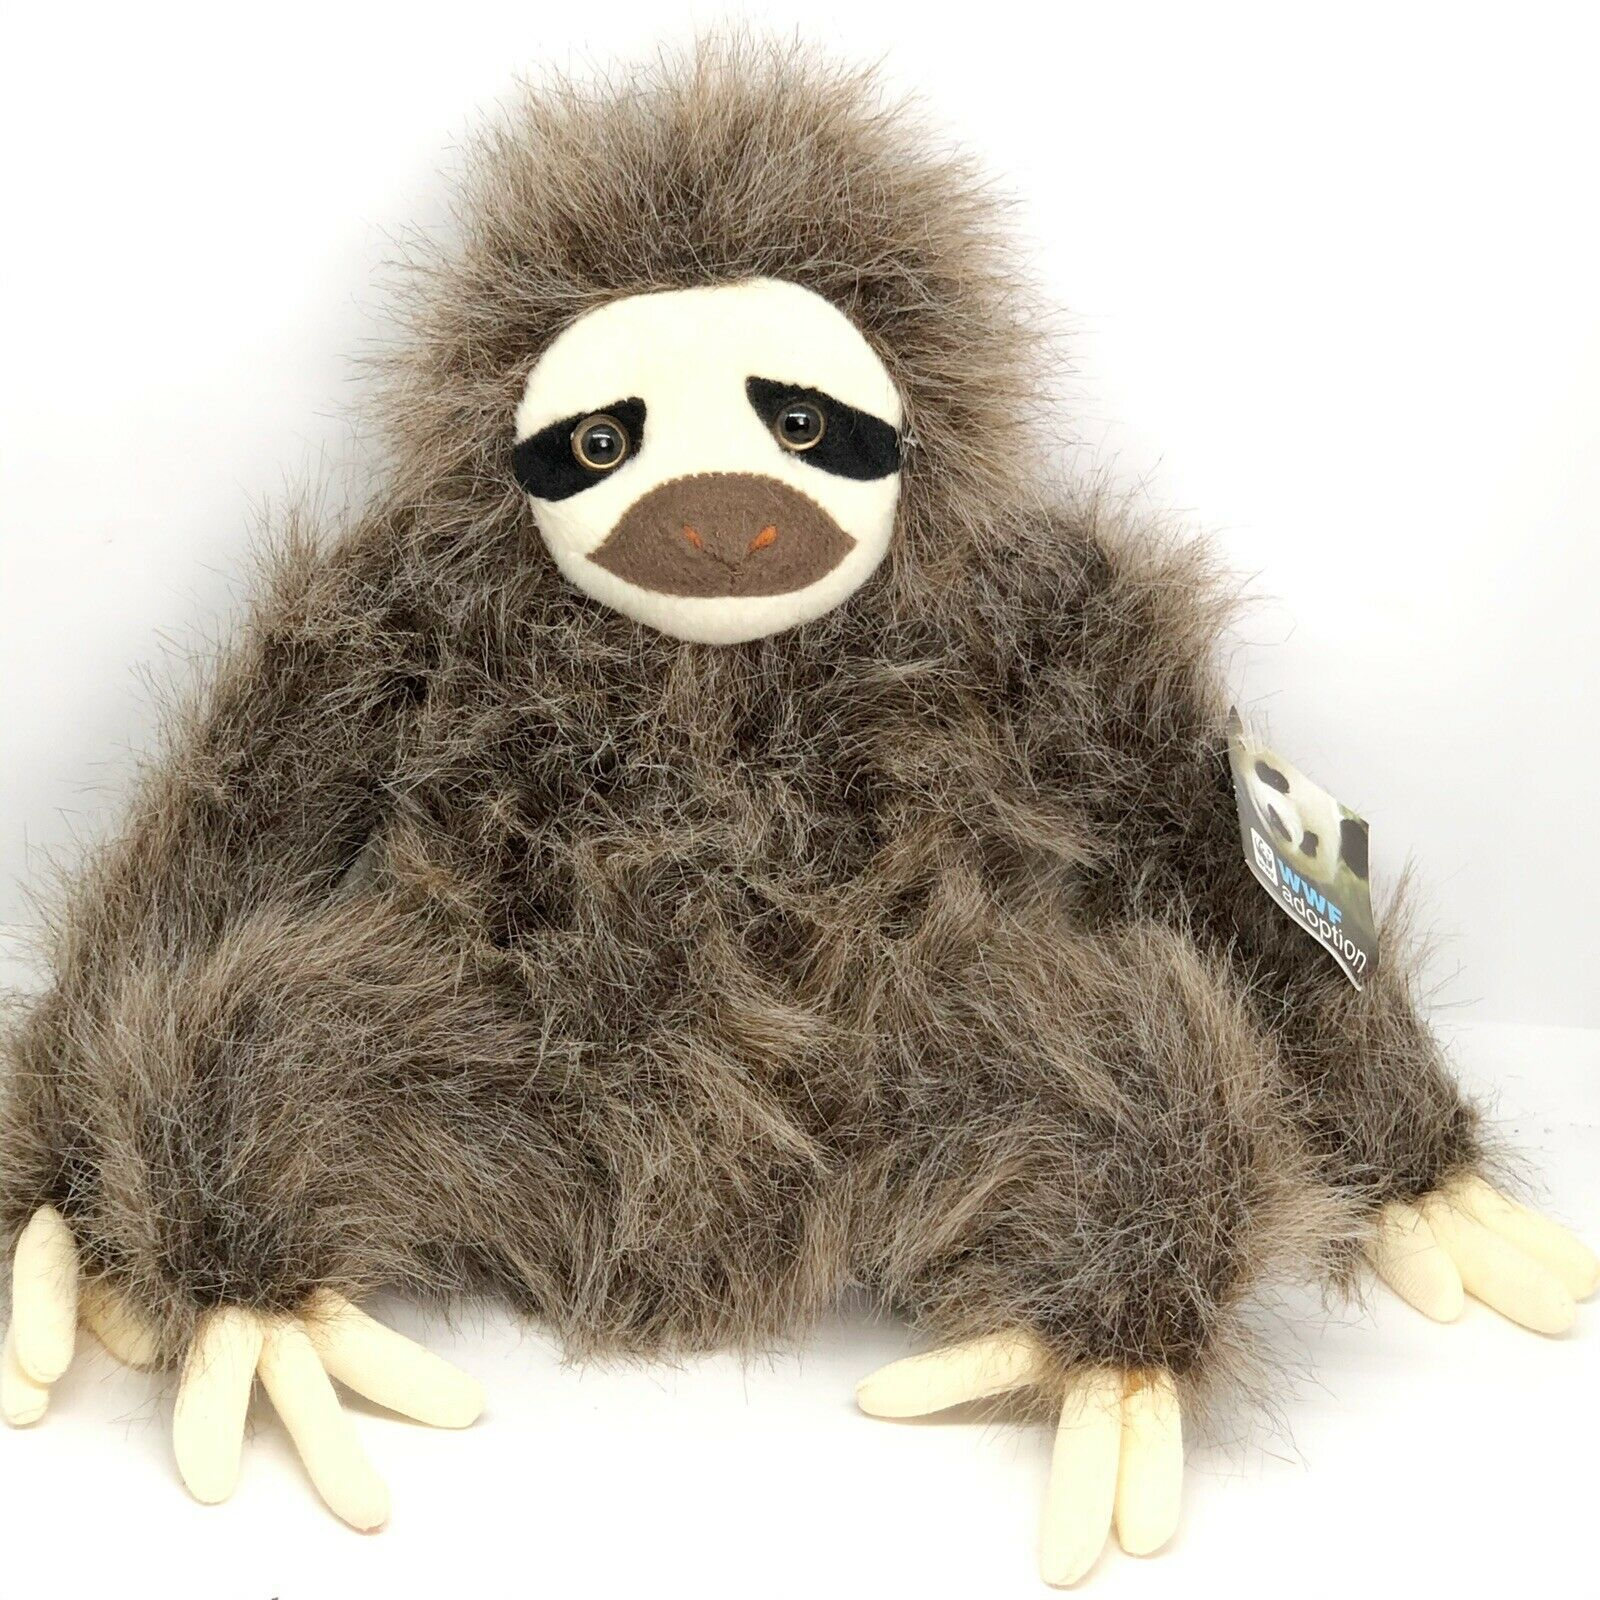 "Primary image for WWF Three-Toed Sloth Plush Fiesta 10"" Realistic Stuffed Animal Wildlife Adoption"